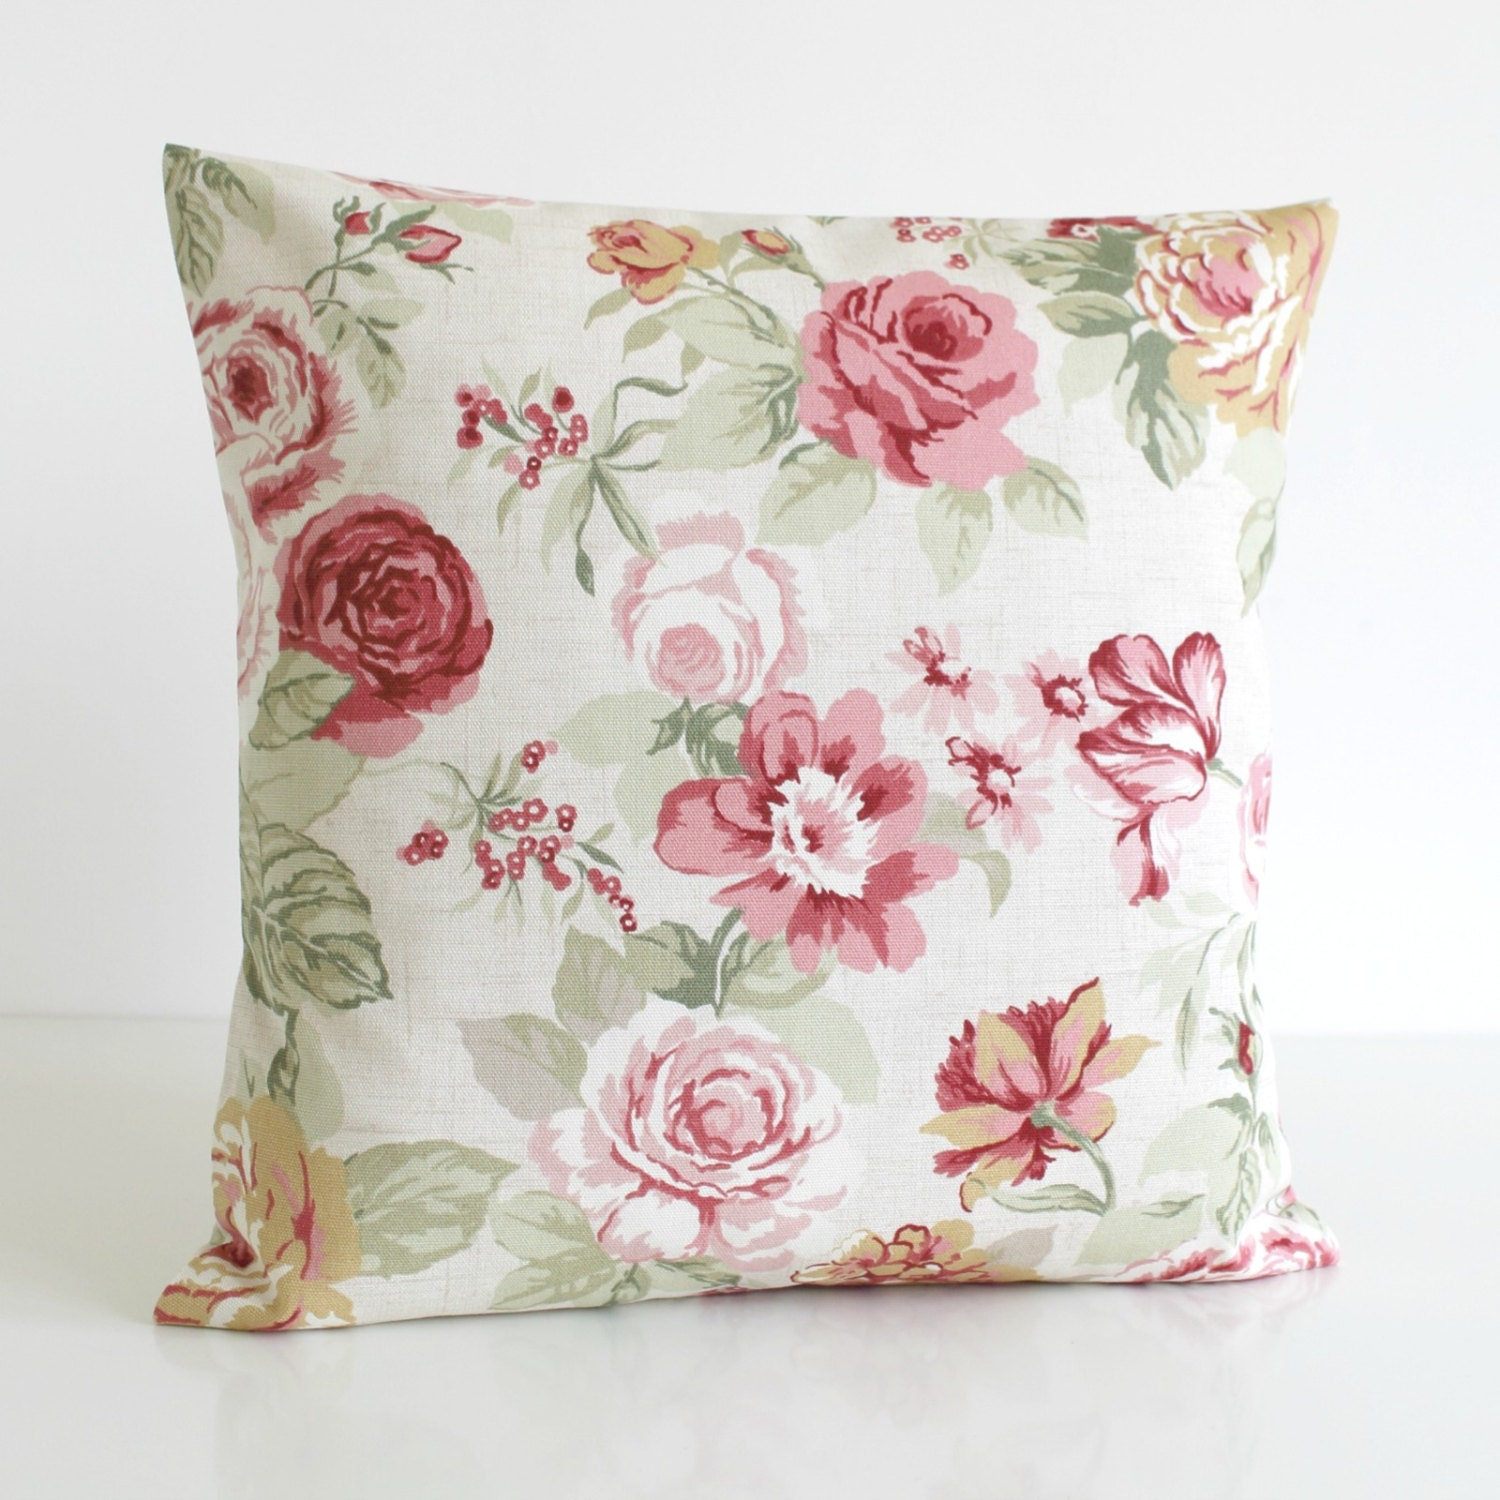 Shabby Chic Toss Pillows : Shabby Chic Decorative Pillow Cover Floral Cushion by CoupleHome